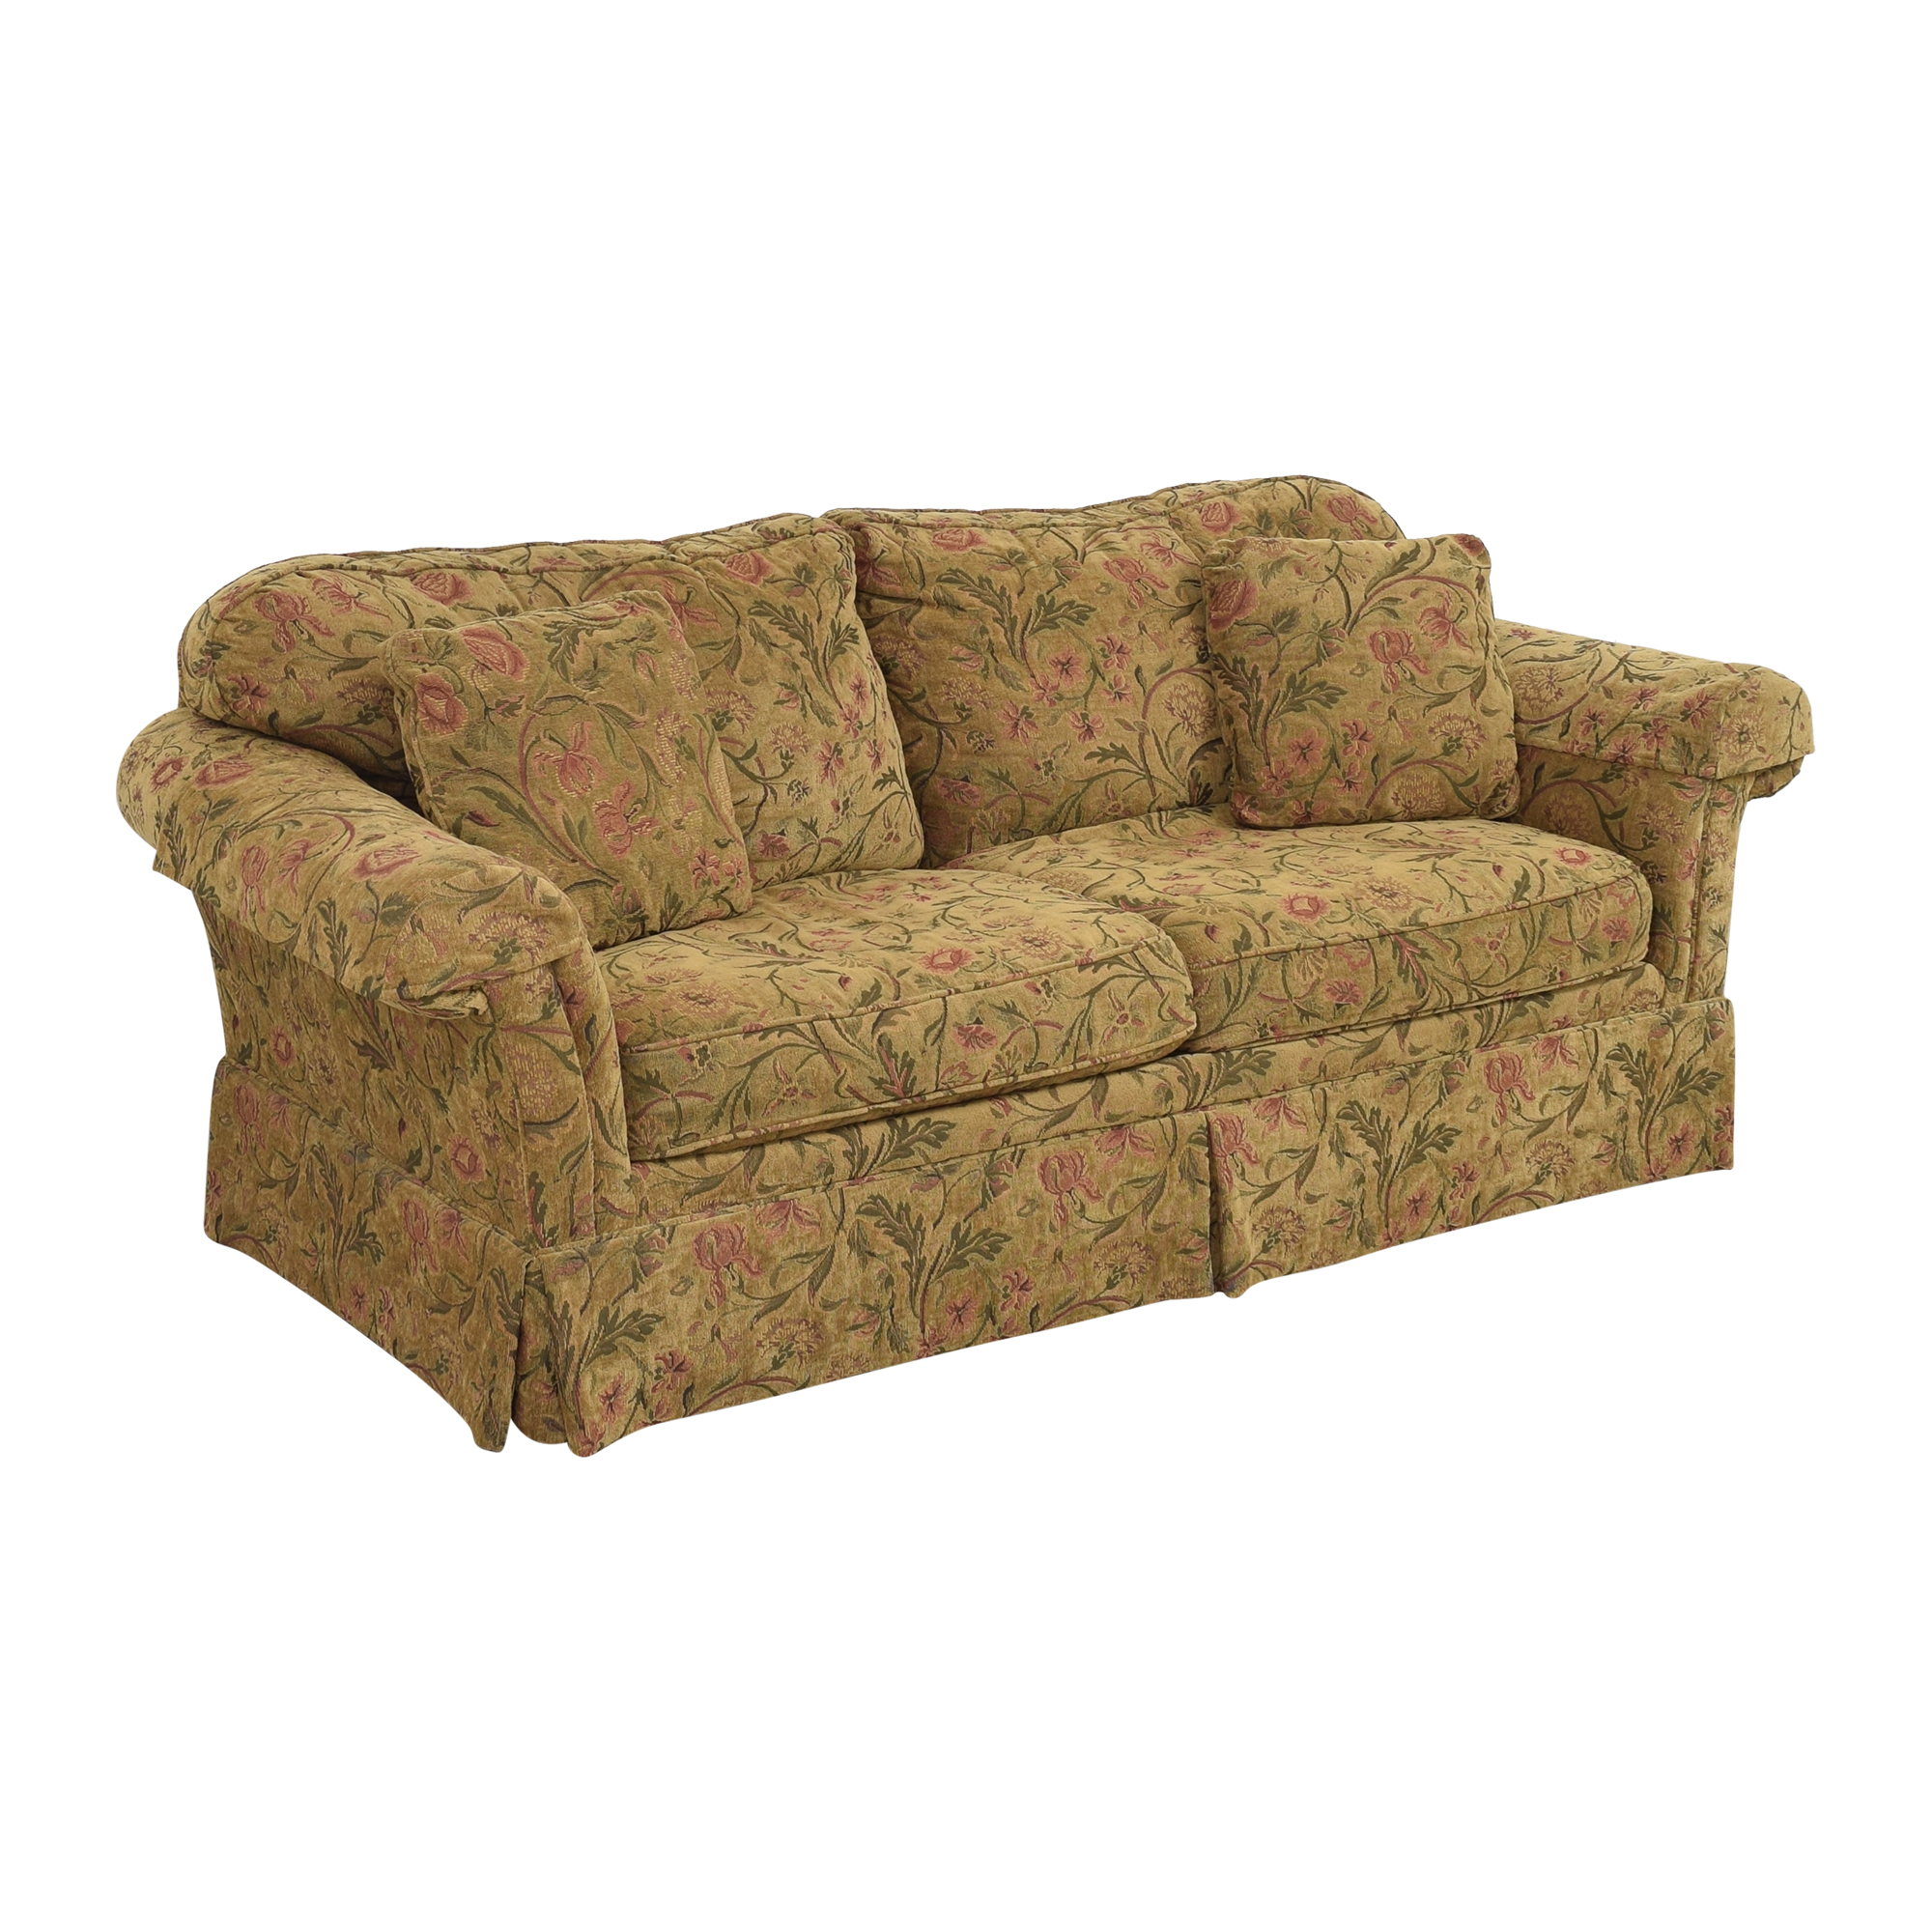 buy Clayton Marcus Clayton Marcus Skirted Two Cushion Sofa online